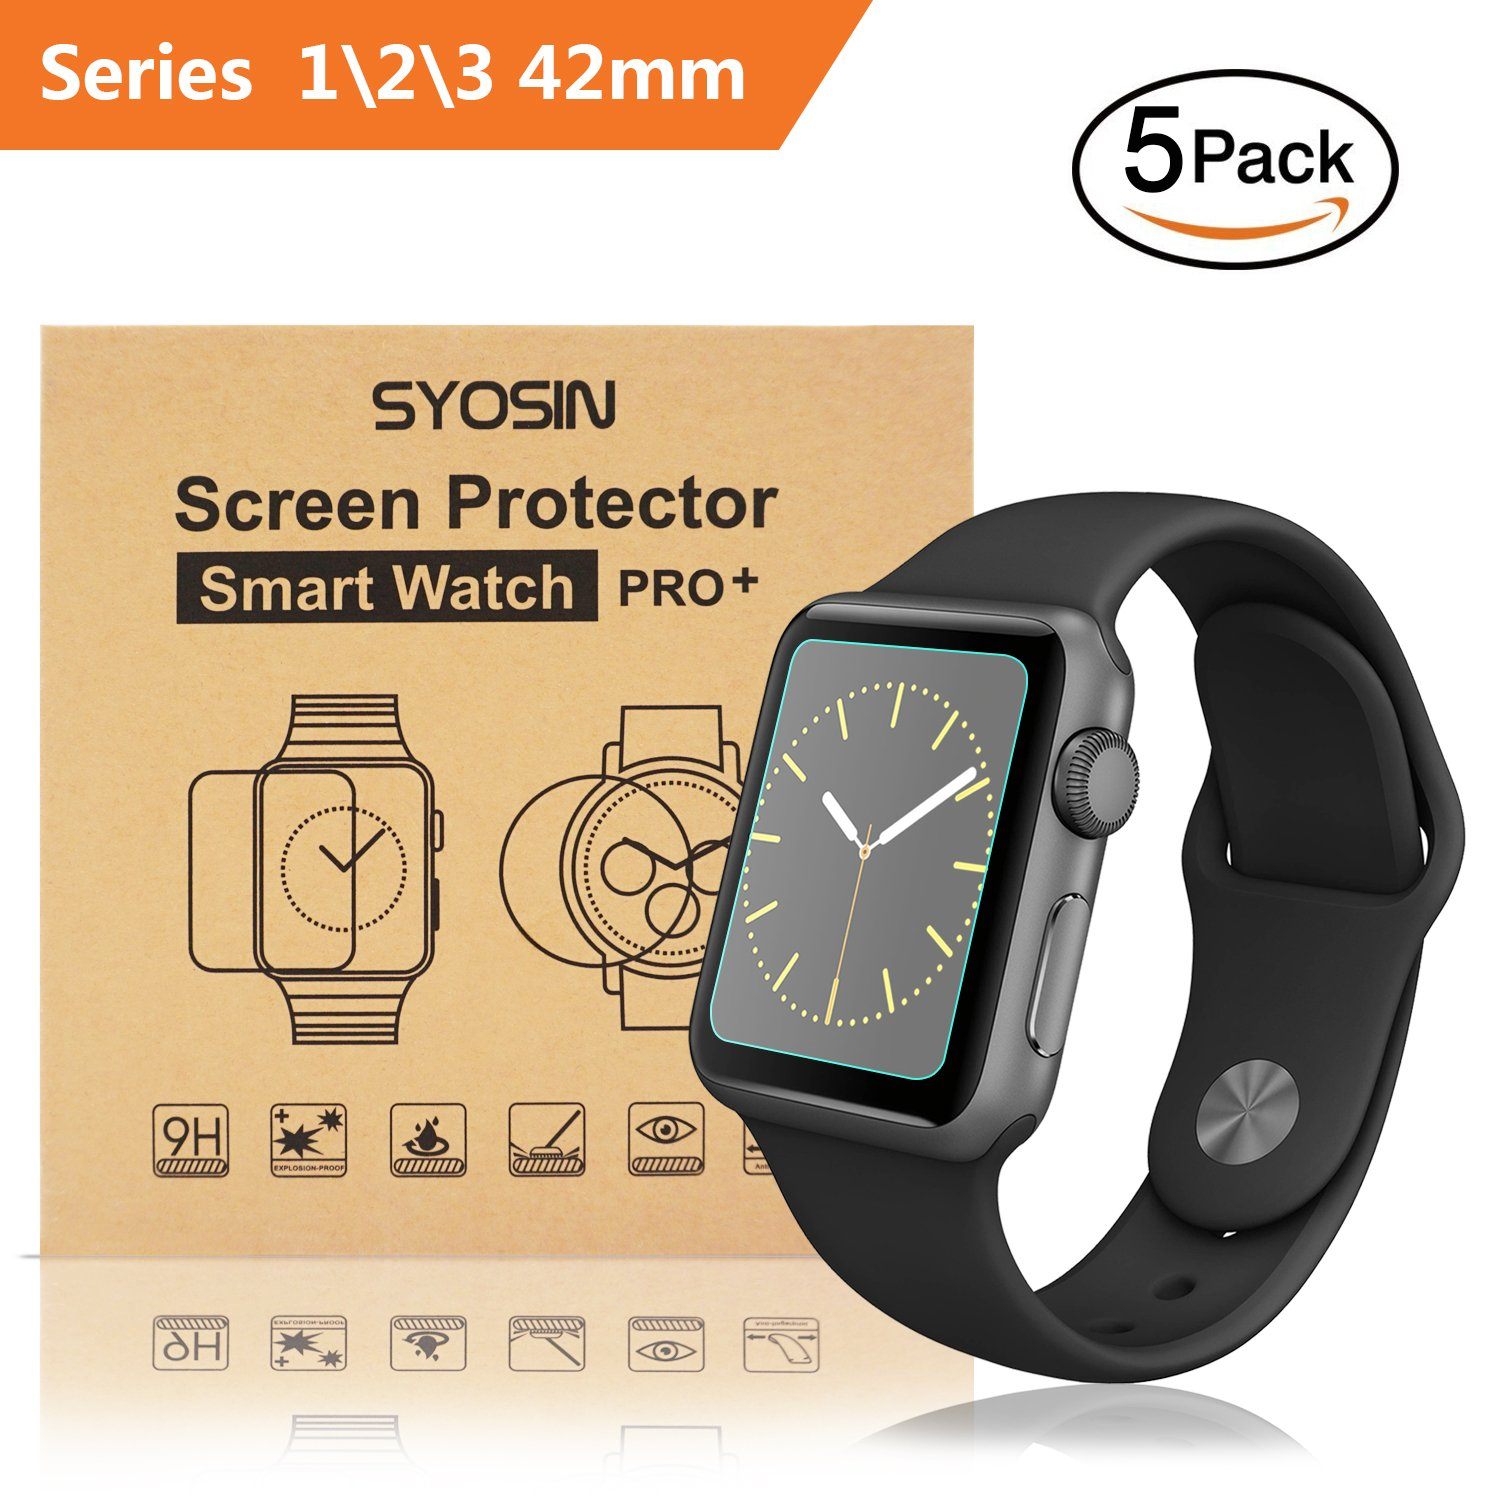 Film Protector para Apple Watch 42mm x5 SYOSIN -7RNPCL87